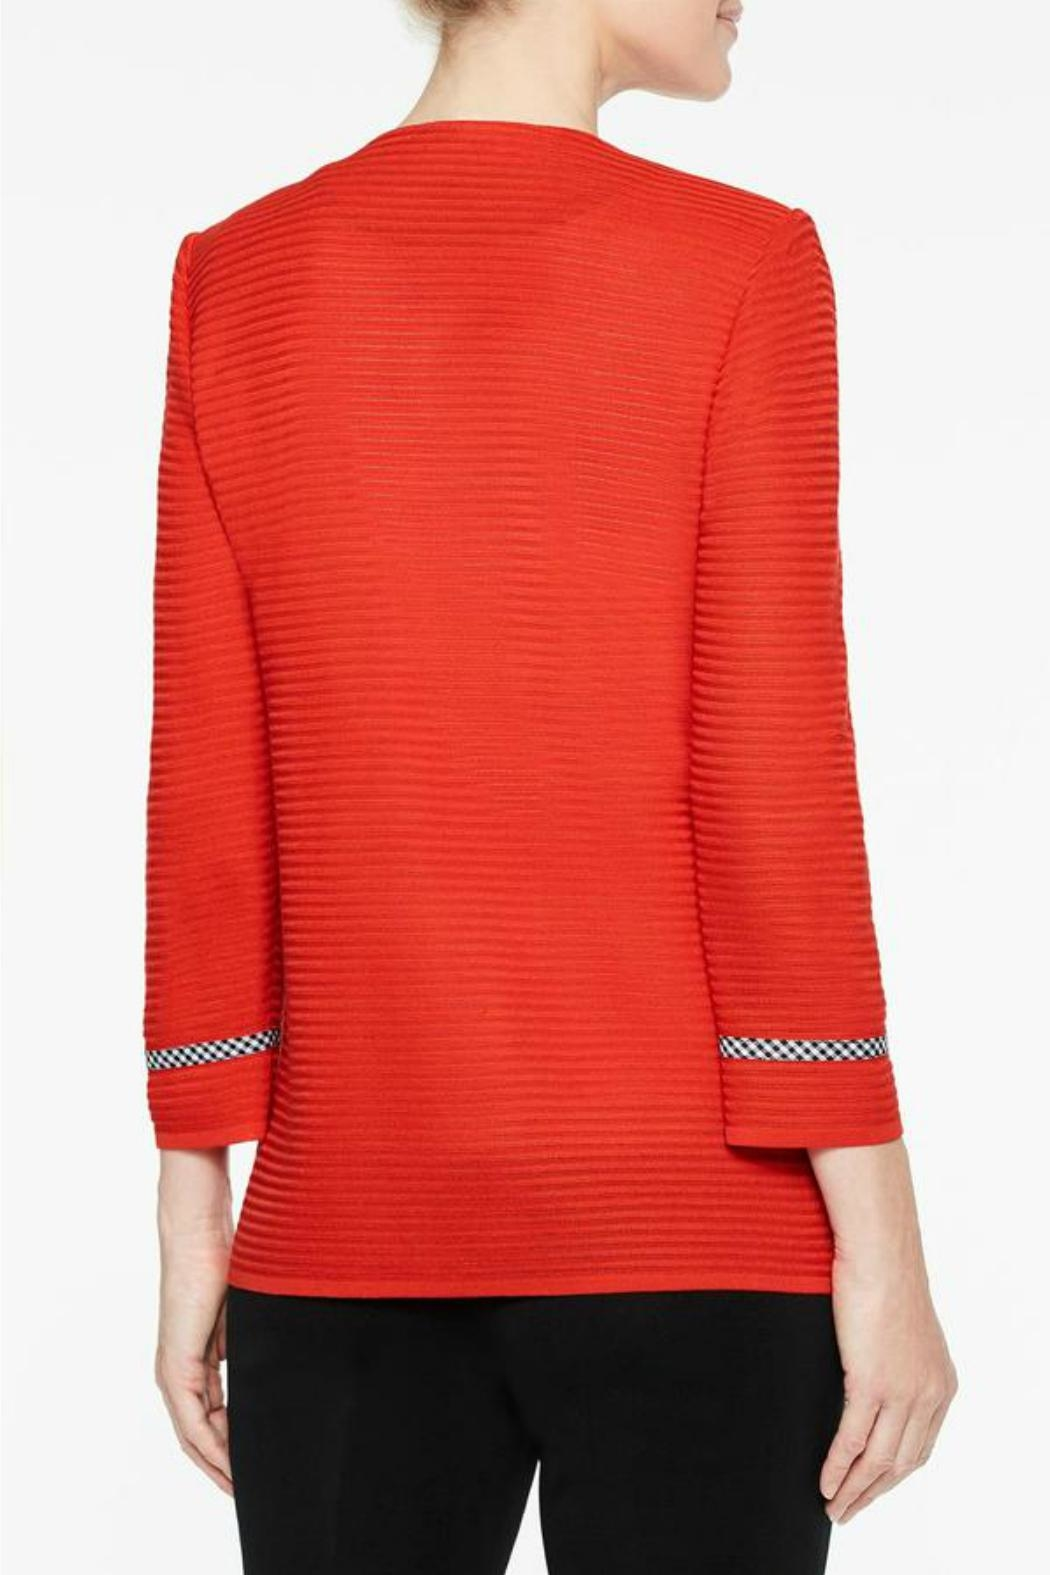 Ming Wang Poppy Red Jacket - Back Cropped Image